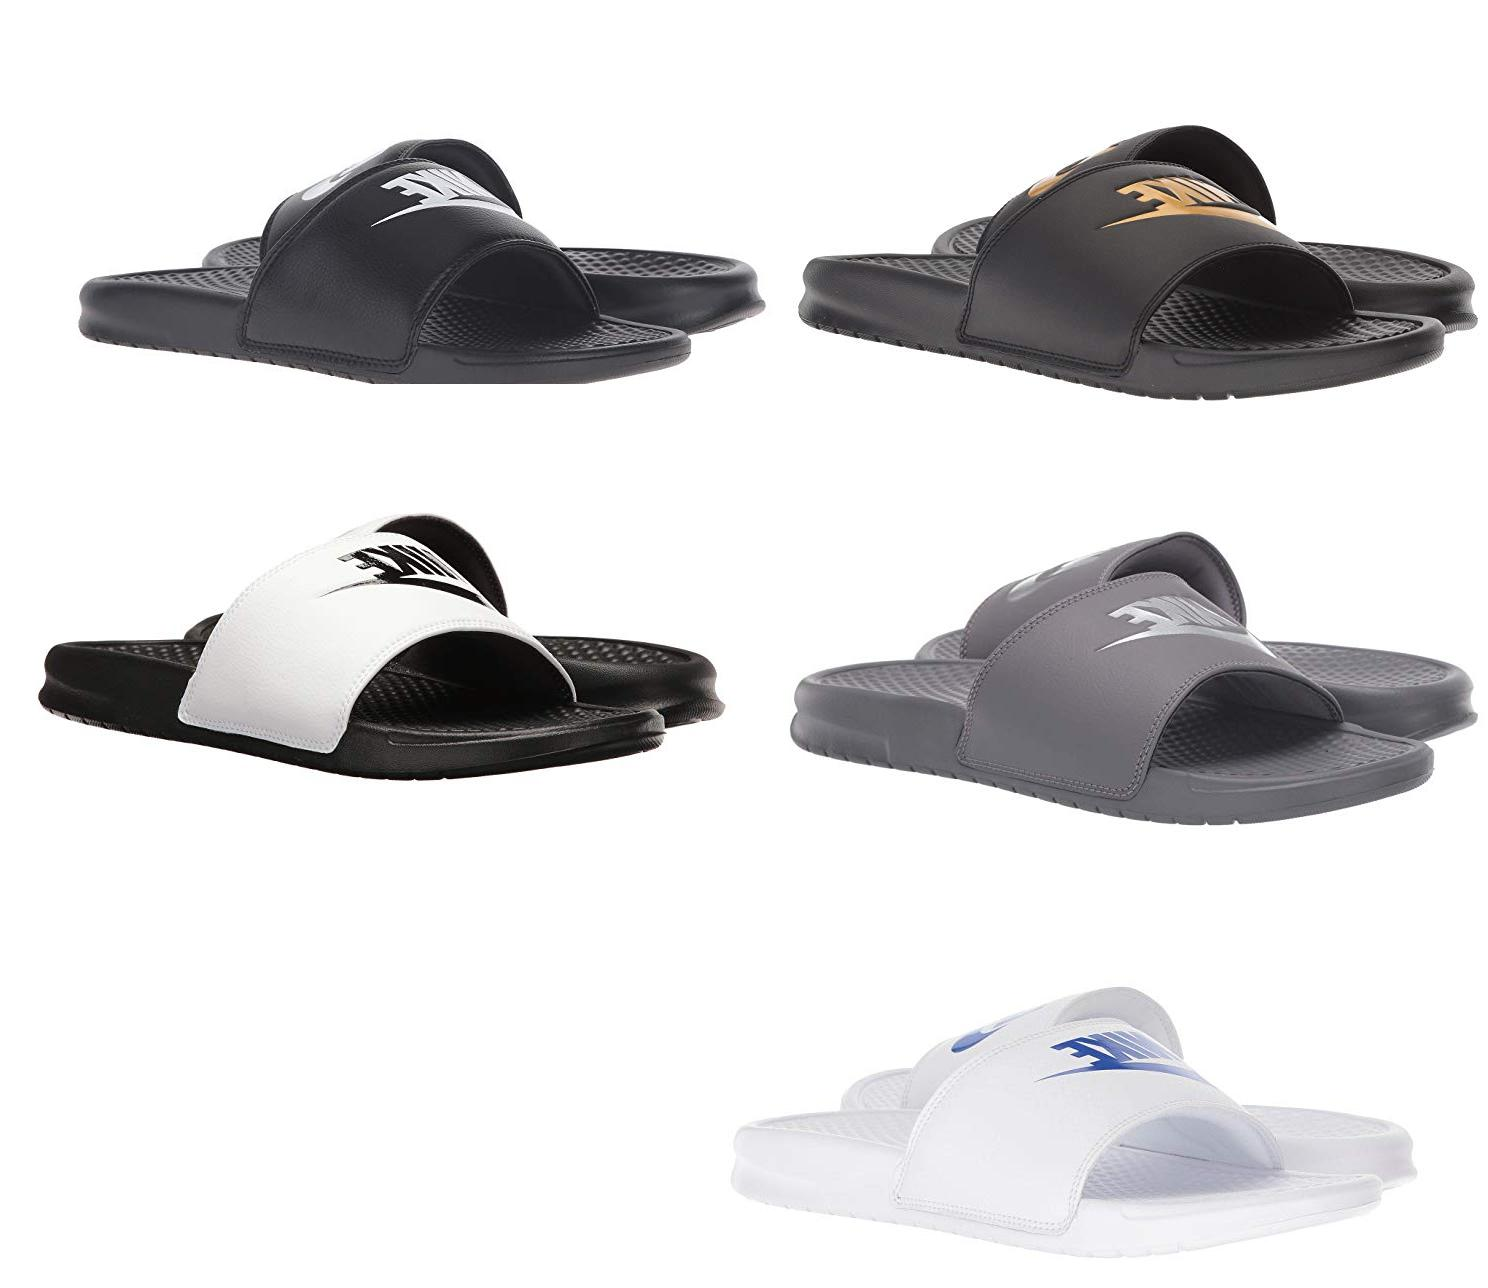 new mens benassi jdi slippers slide sandals